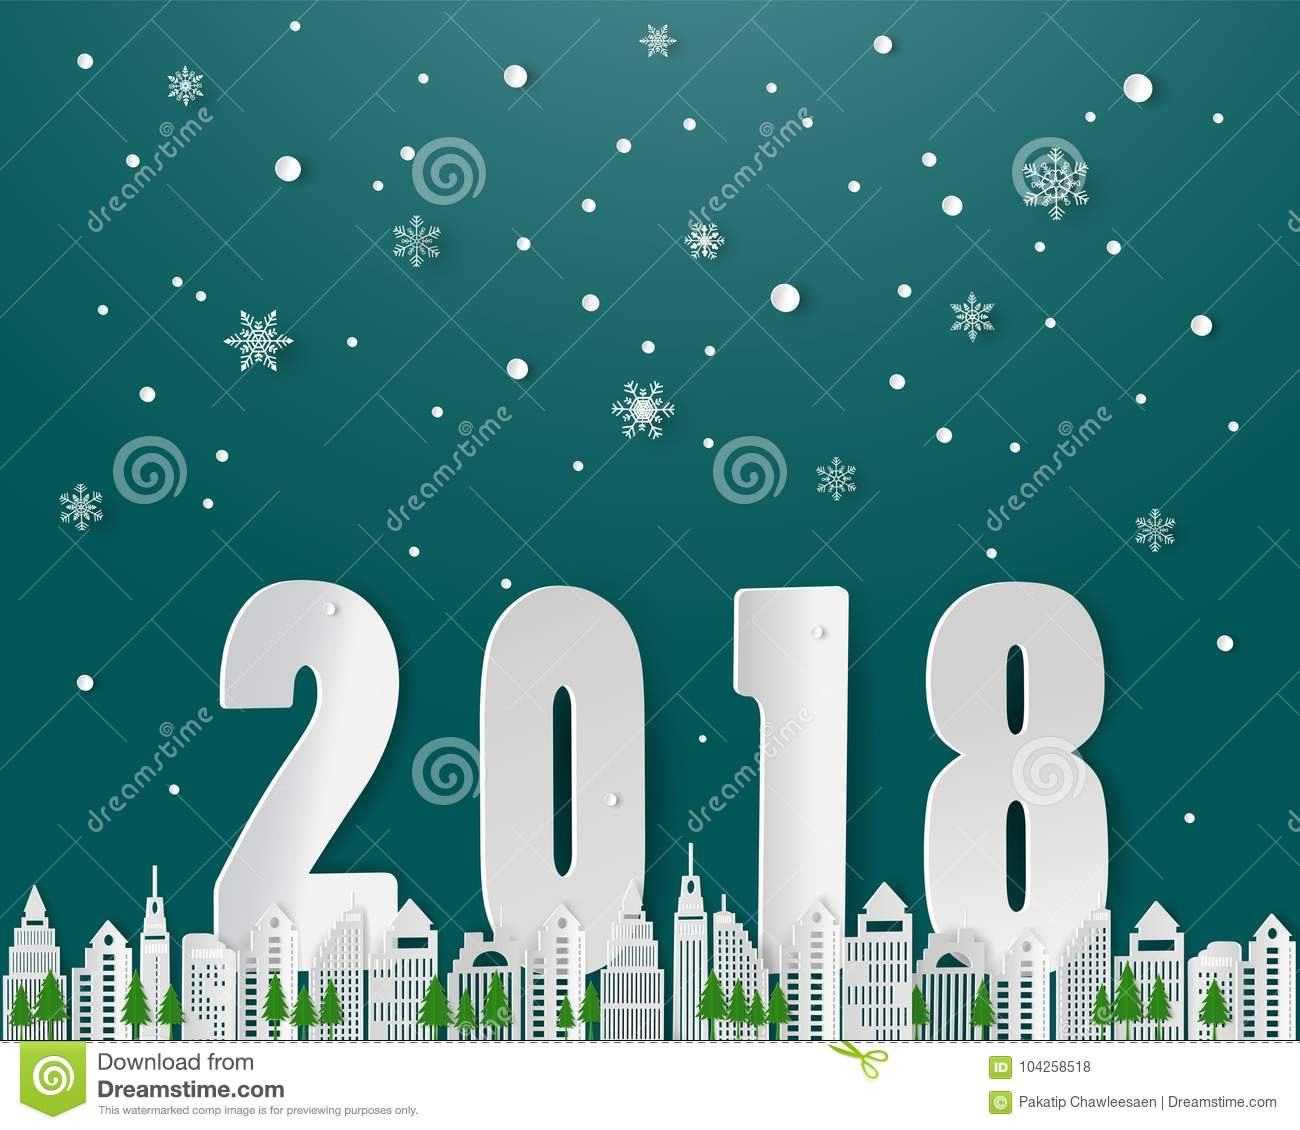 Happy New Year On Winter Season Snowflake City Landscape With Text